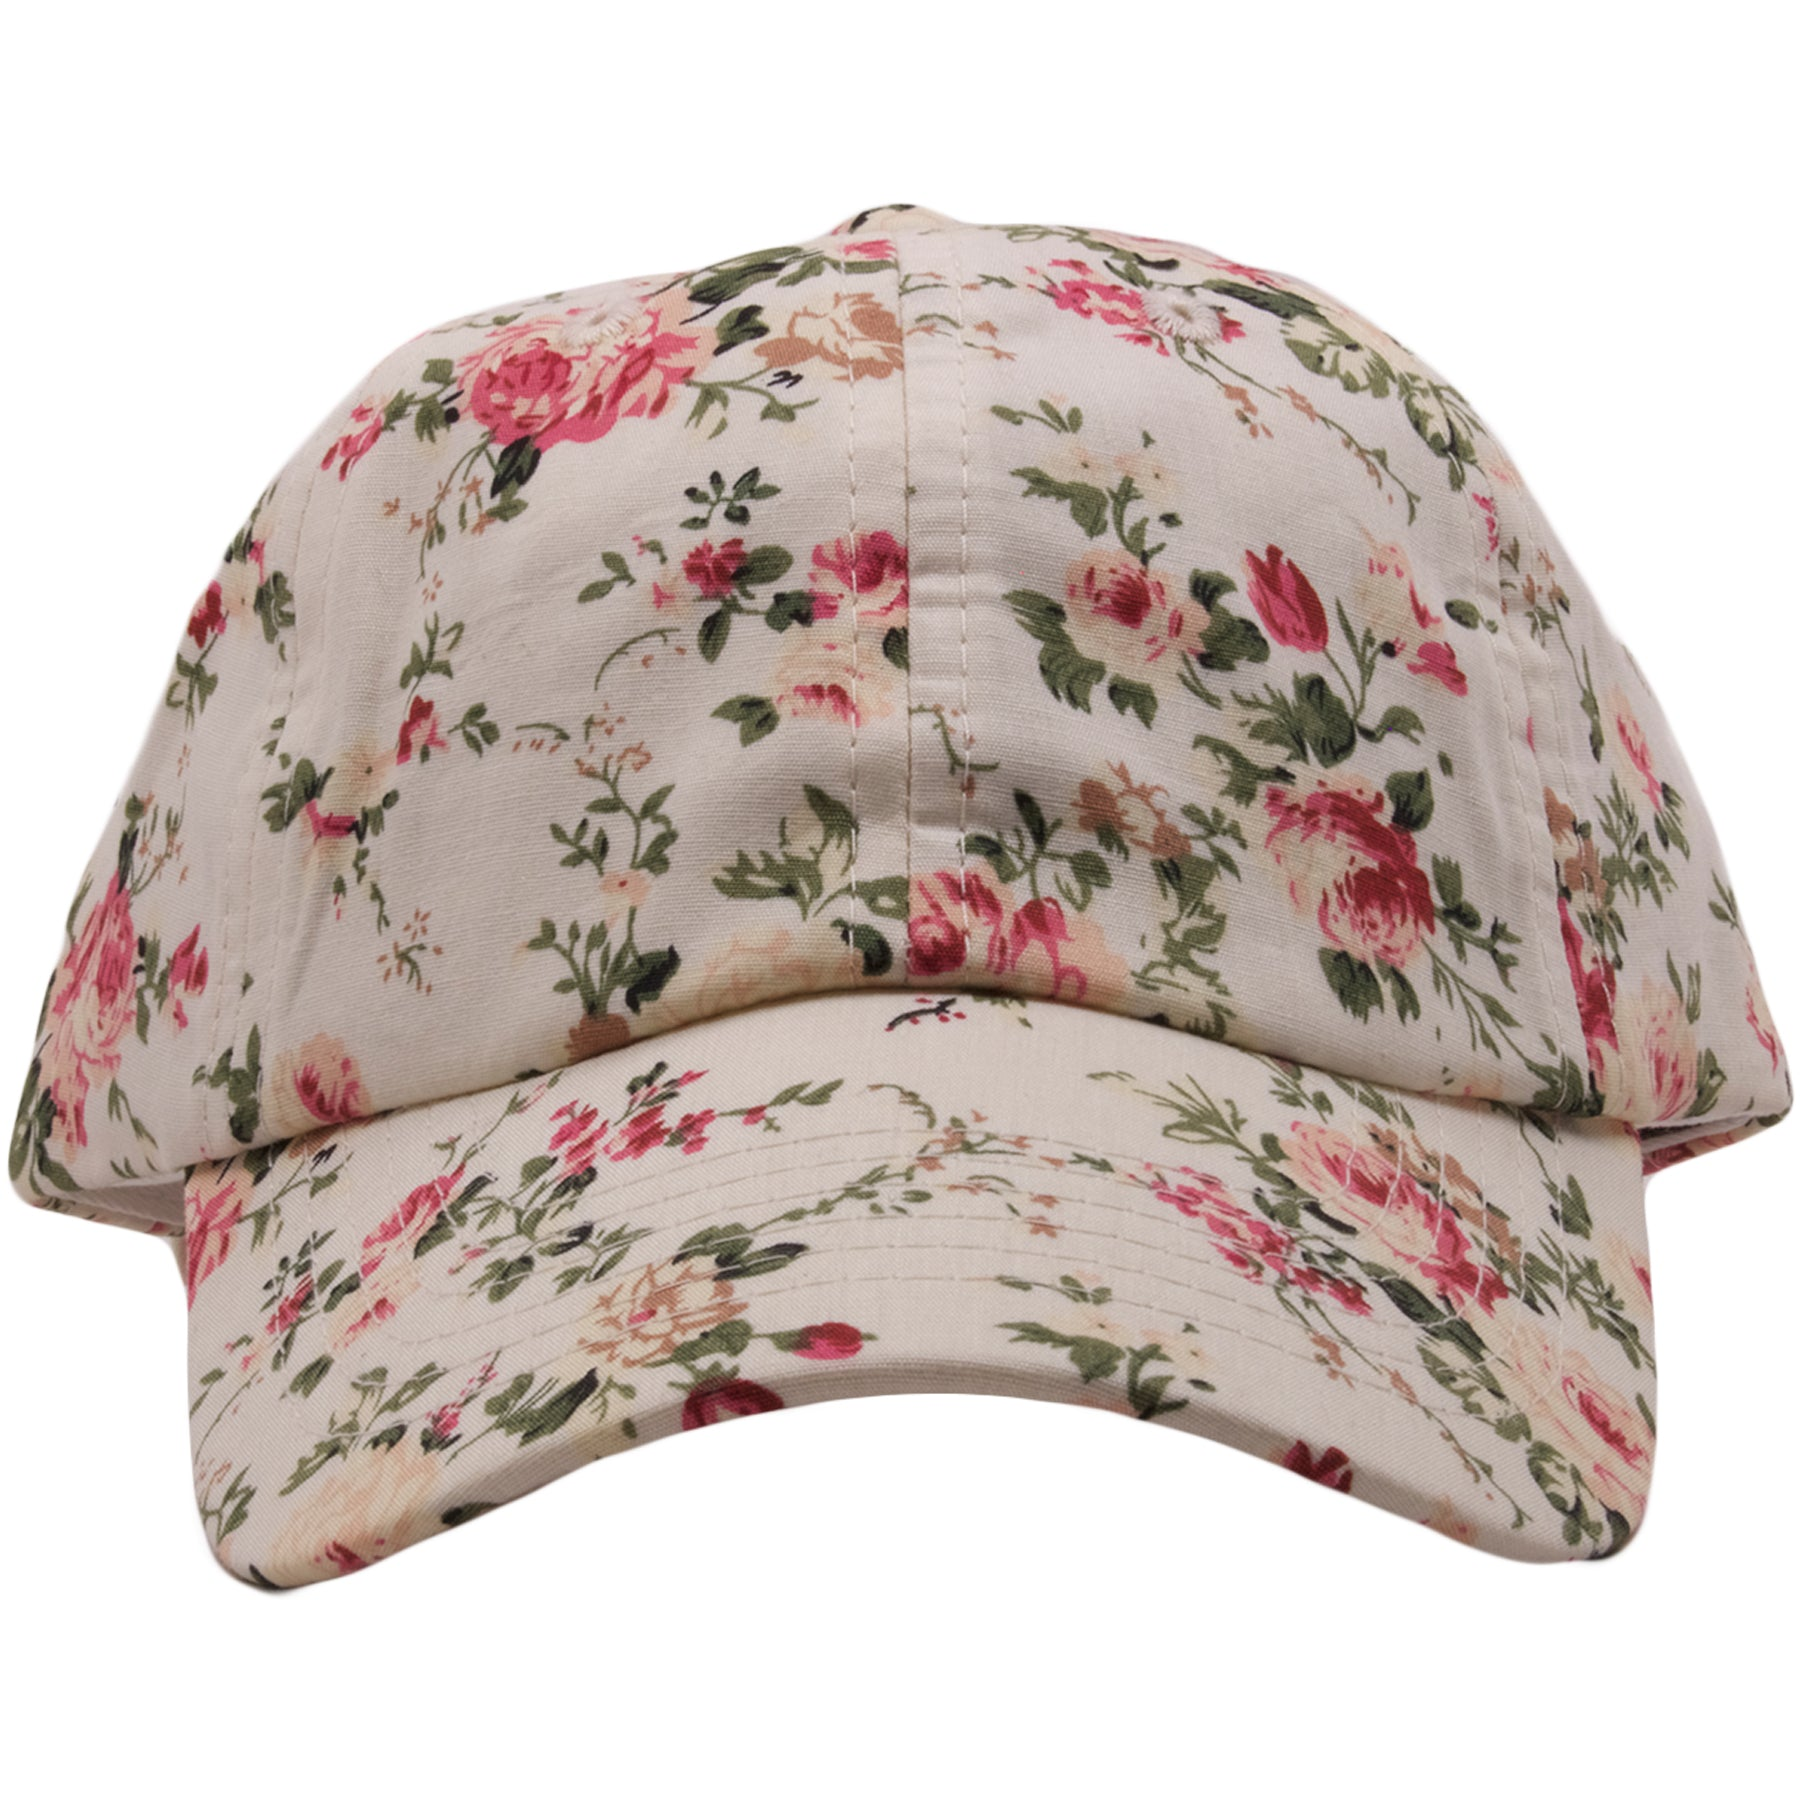 1527c9cd2f86a the off white kid s floral blank adjustable dad hat is solid off white and  features a